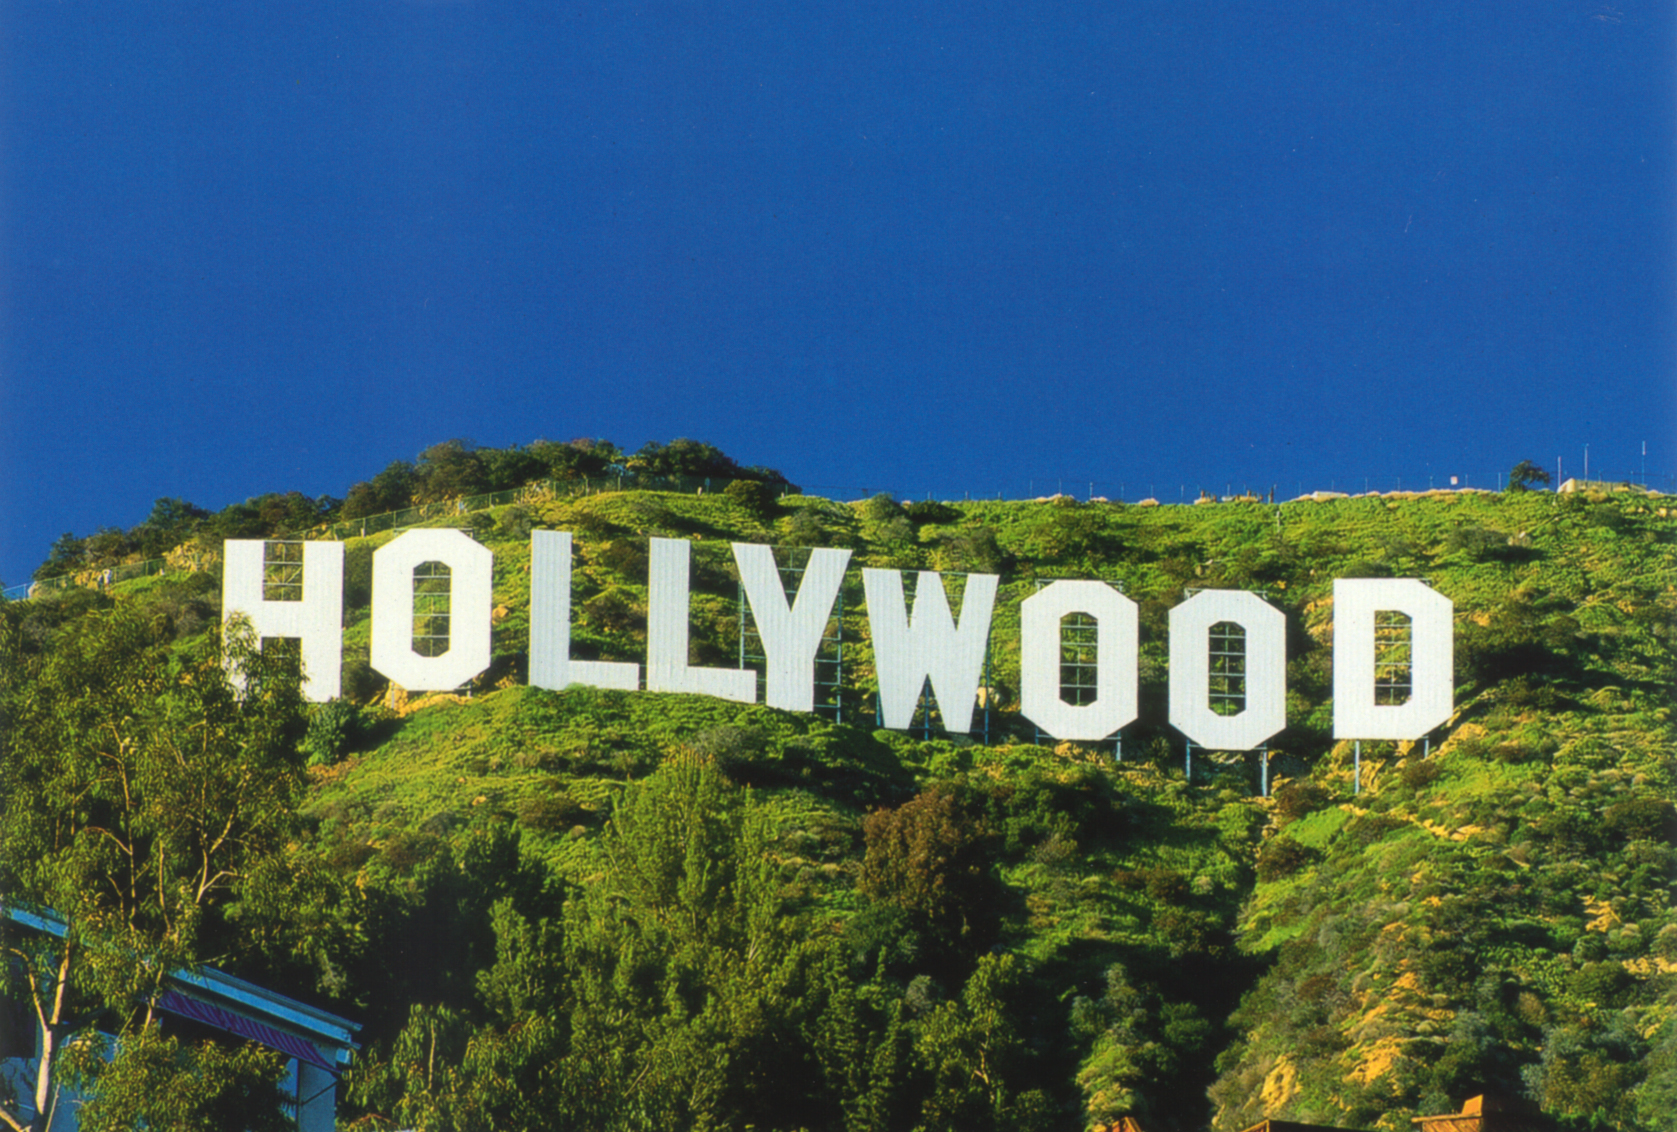 Masai Media hollywood sign wallpaper 1677x1132